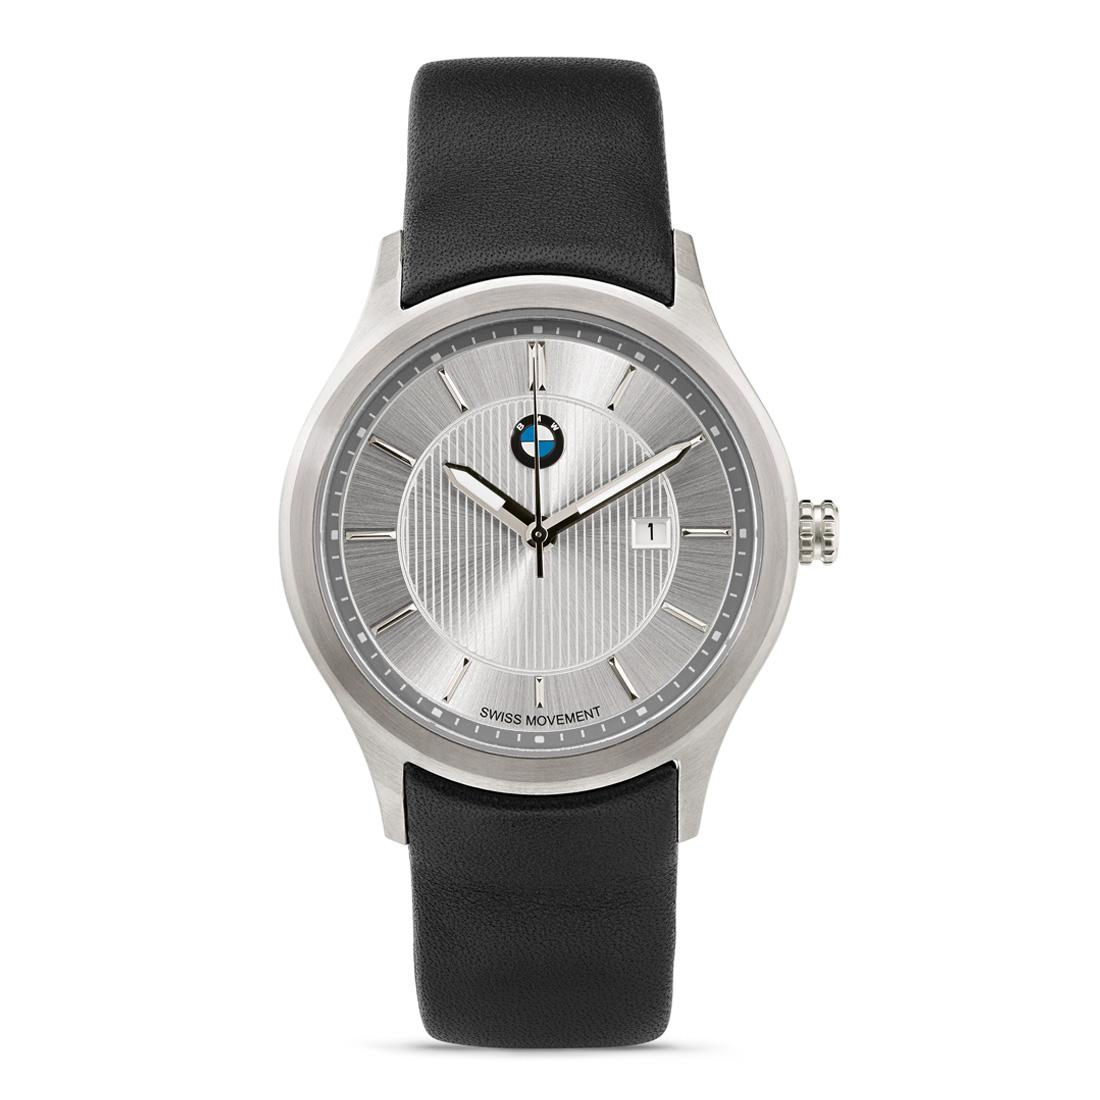 BMW Men's Watch